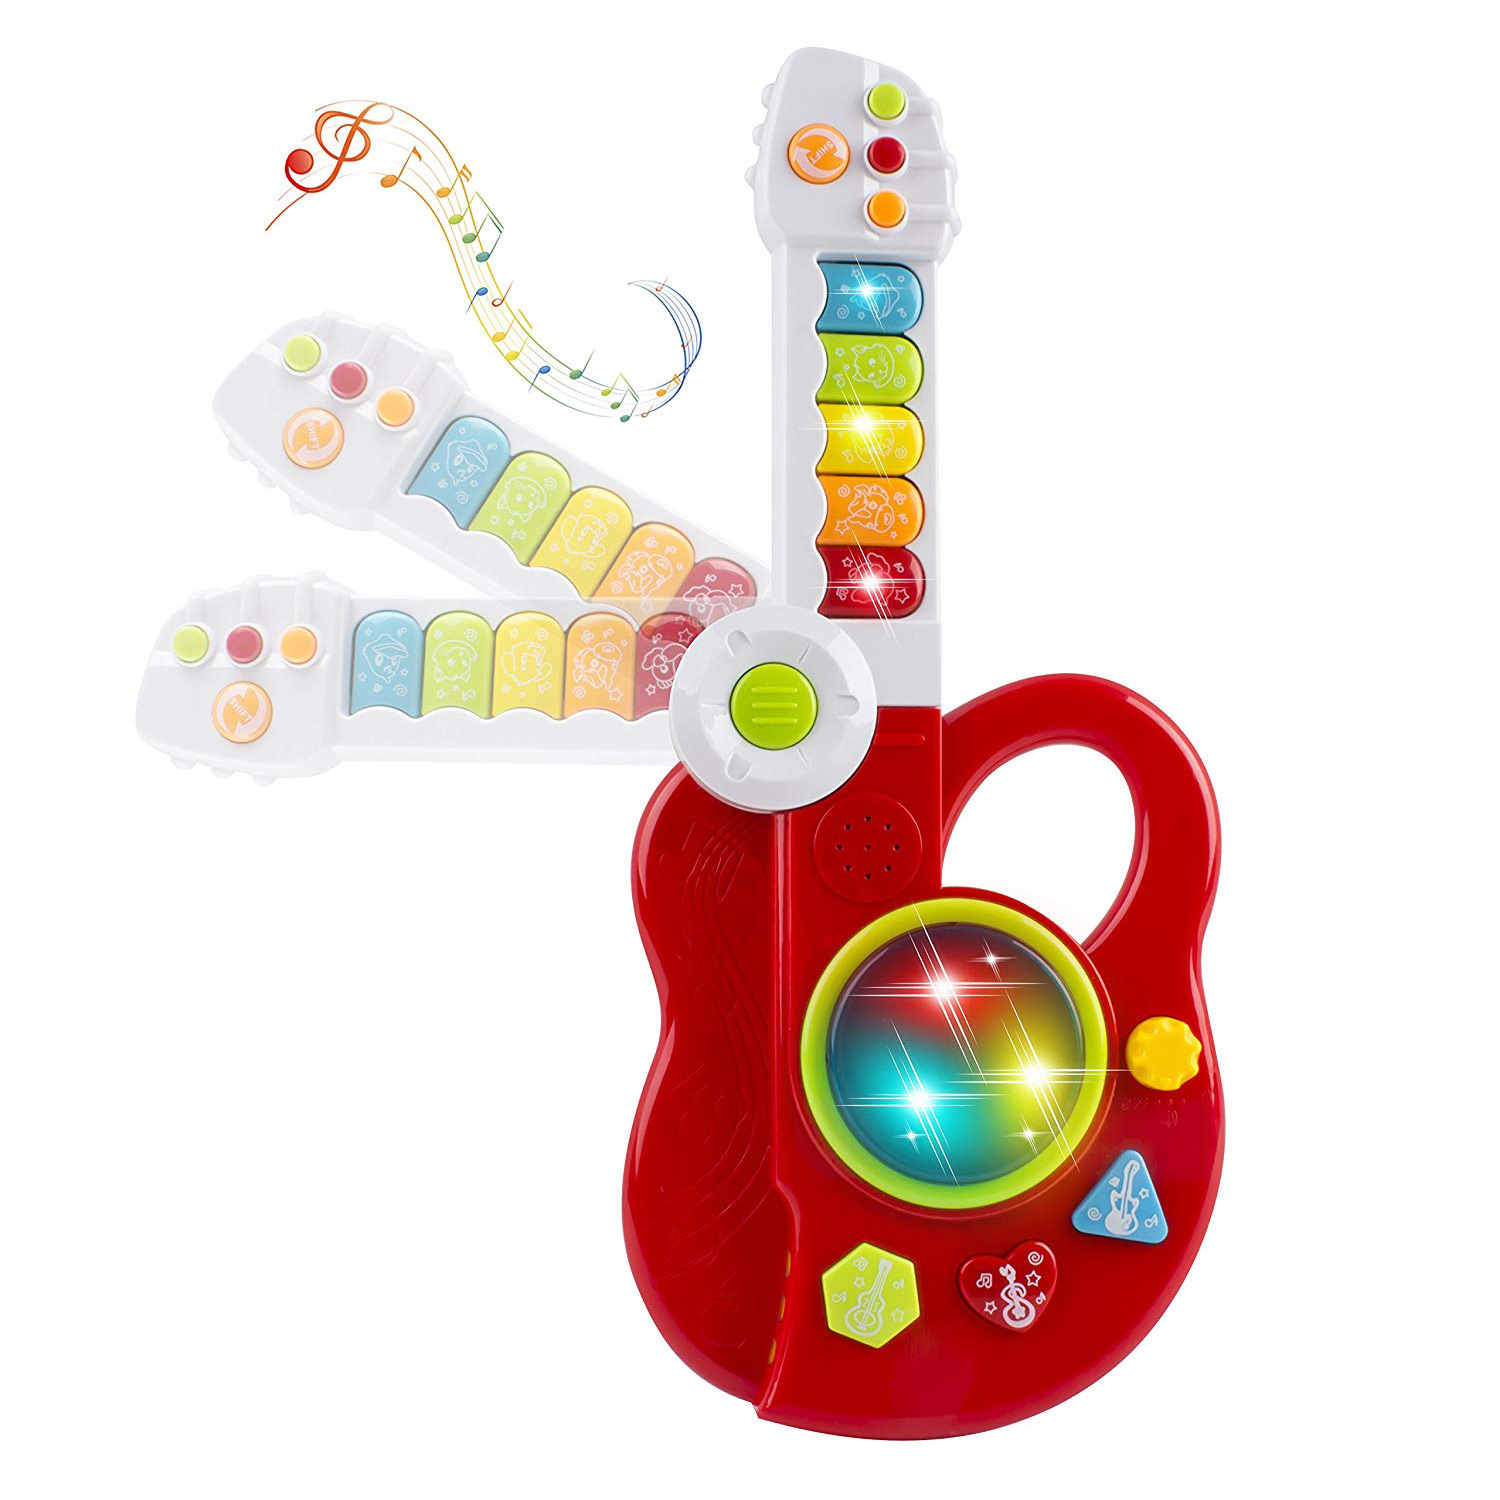 Toy Electric Guitar 3-in-1 With Keyboard And Jazz Drum 3D Lights Up Kids Educational Musical Instrument Playset Vibrant Sound Music And Colors Easy To Use Great For Children's Early Learning (Red)